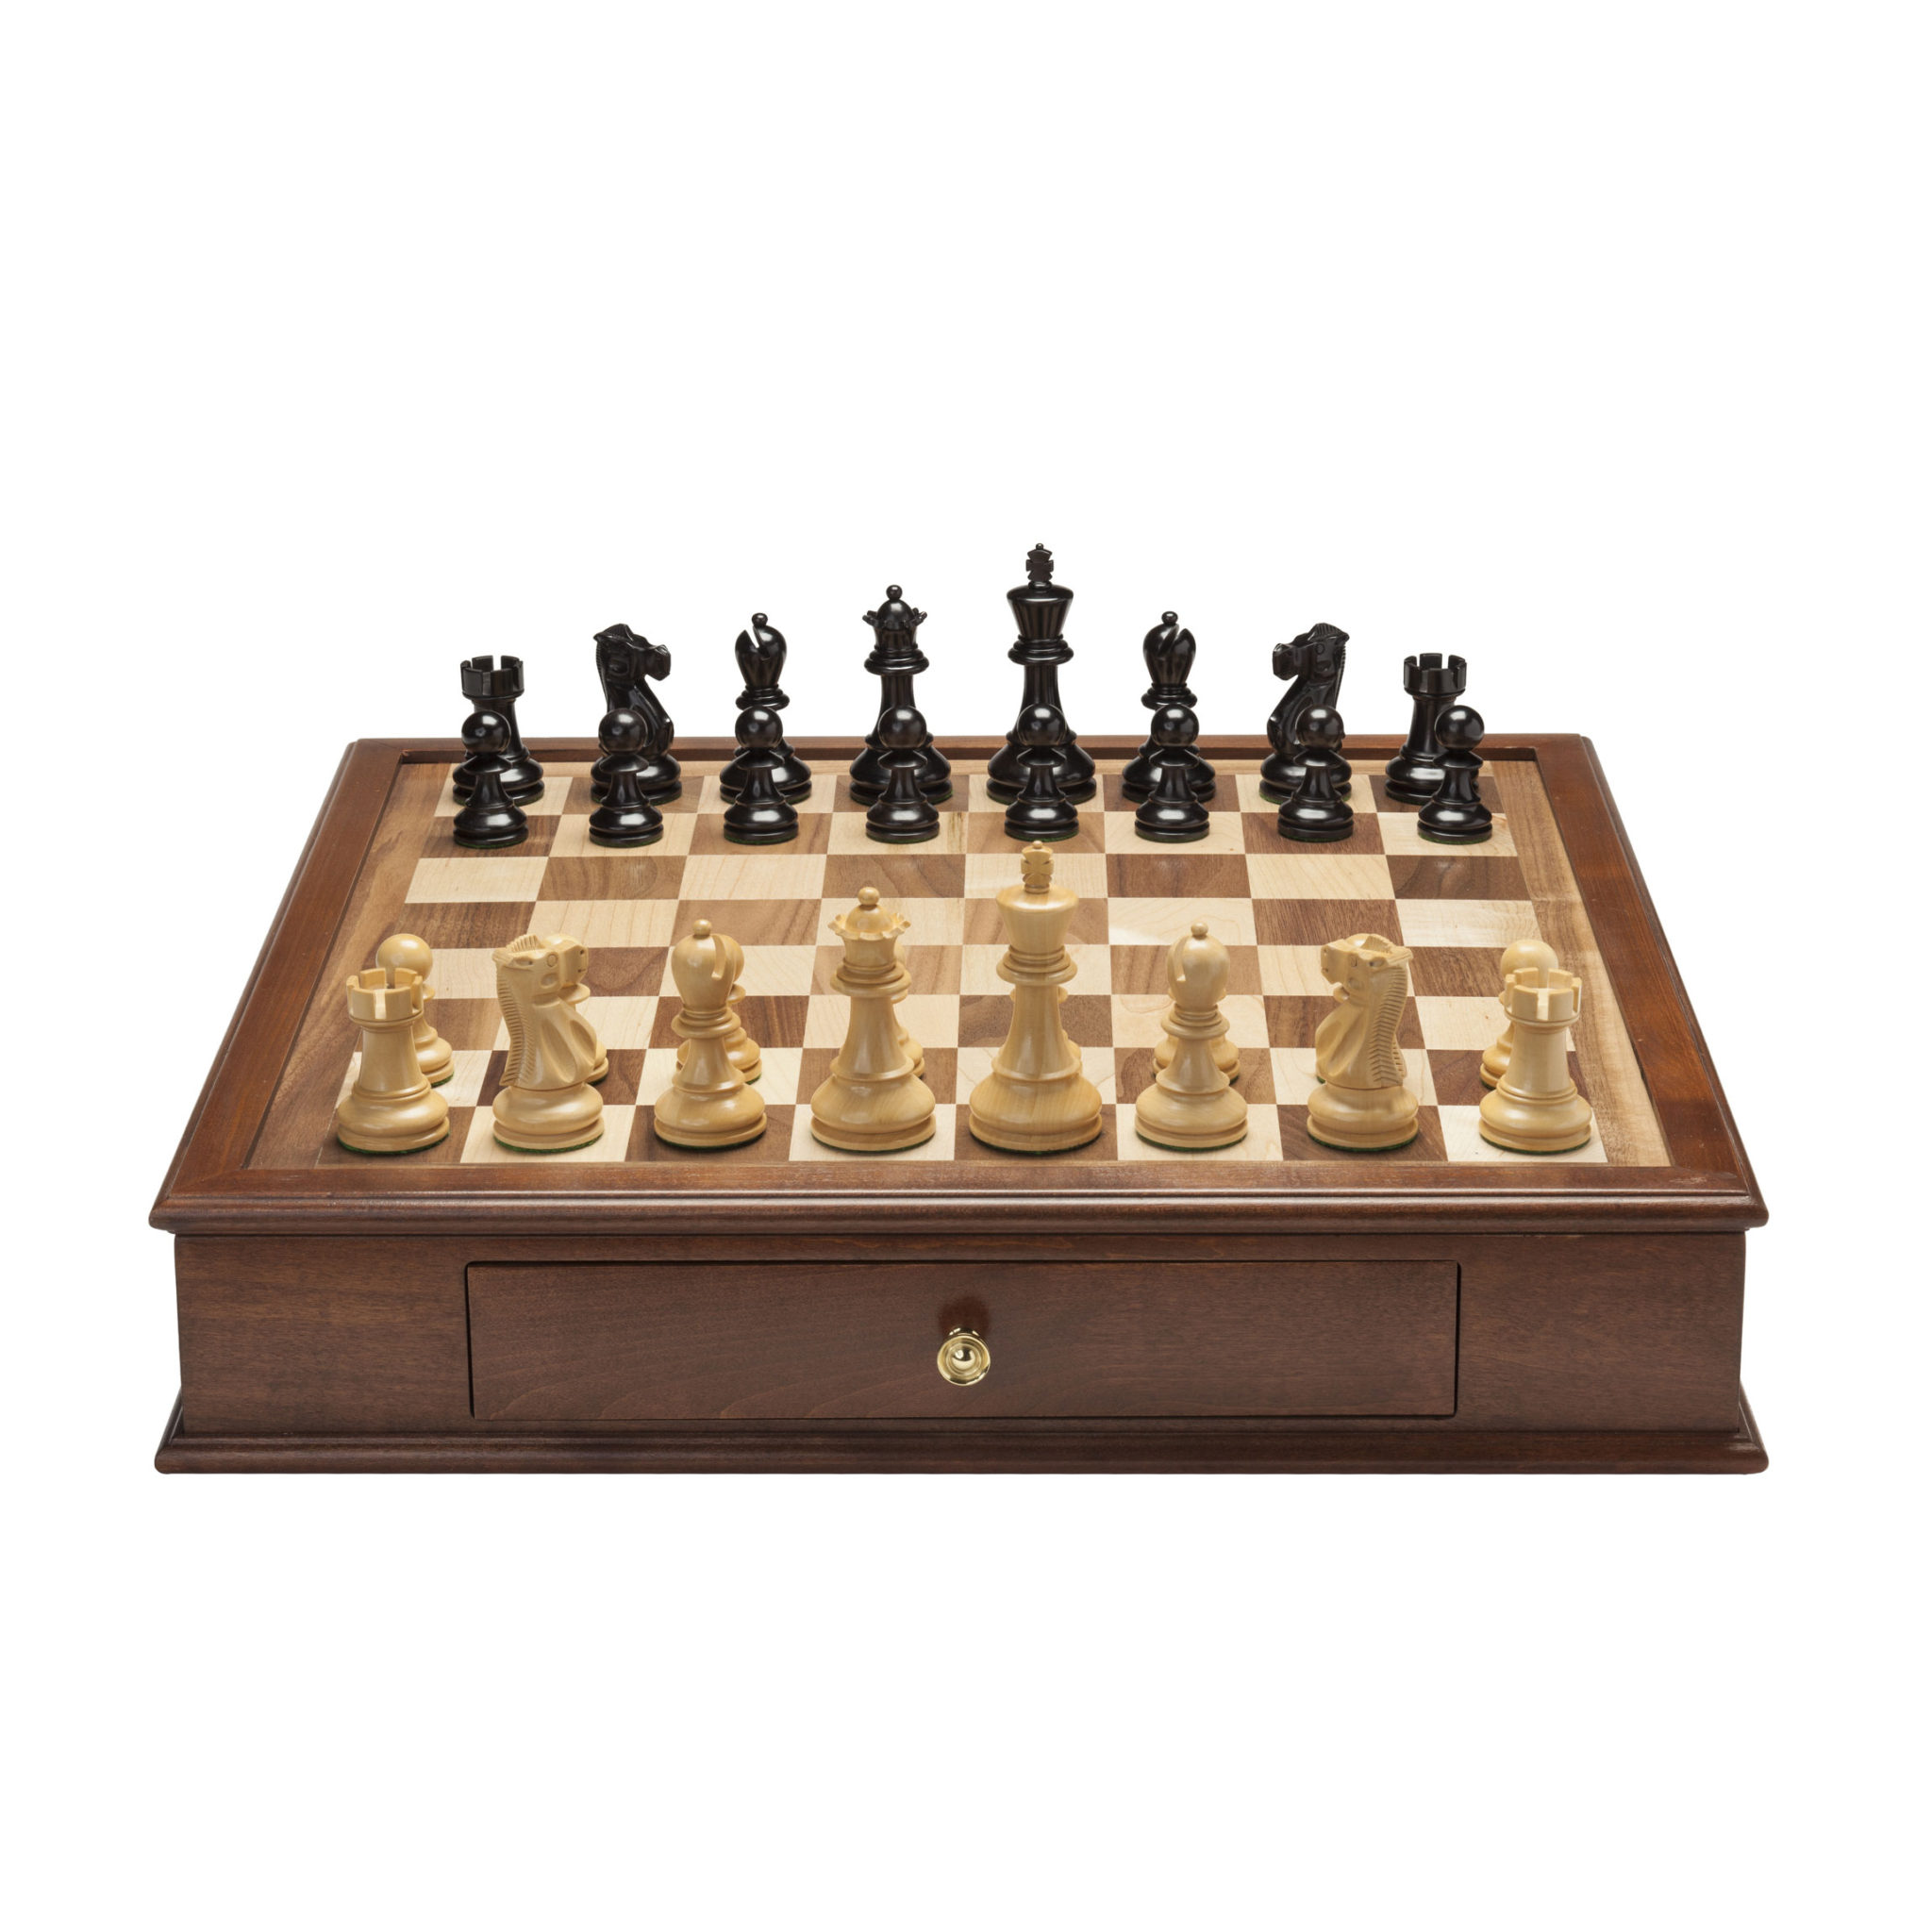 Grand Jacques Chess Set With Storage Drawers Weighted Pieces With Solid Maple Walnut Wood Board 19 In Made In Usa